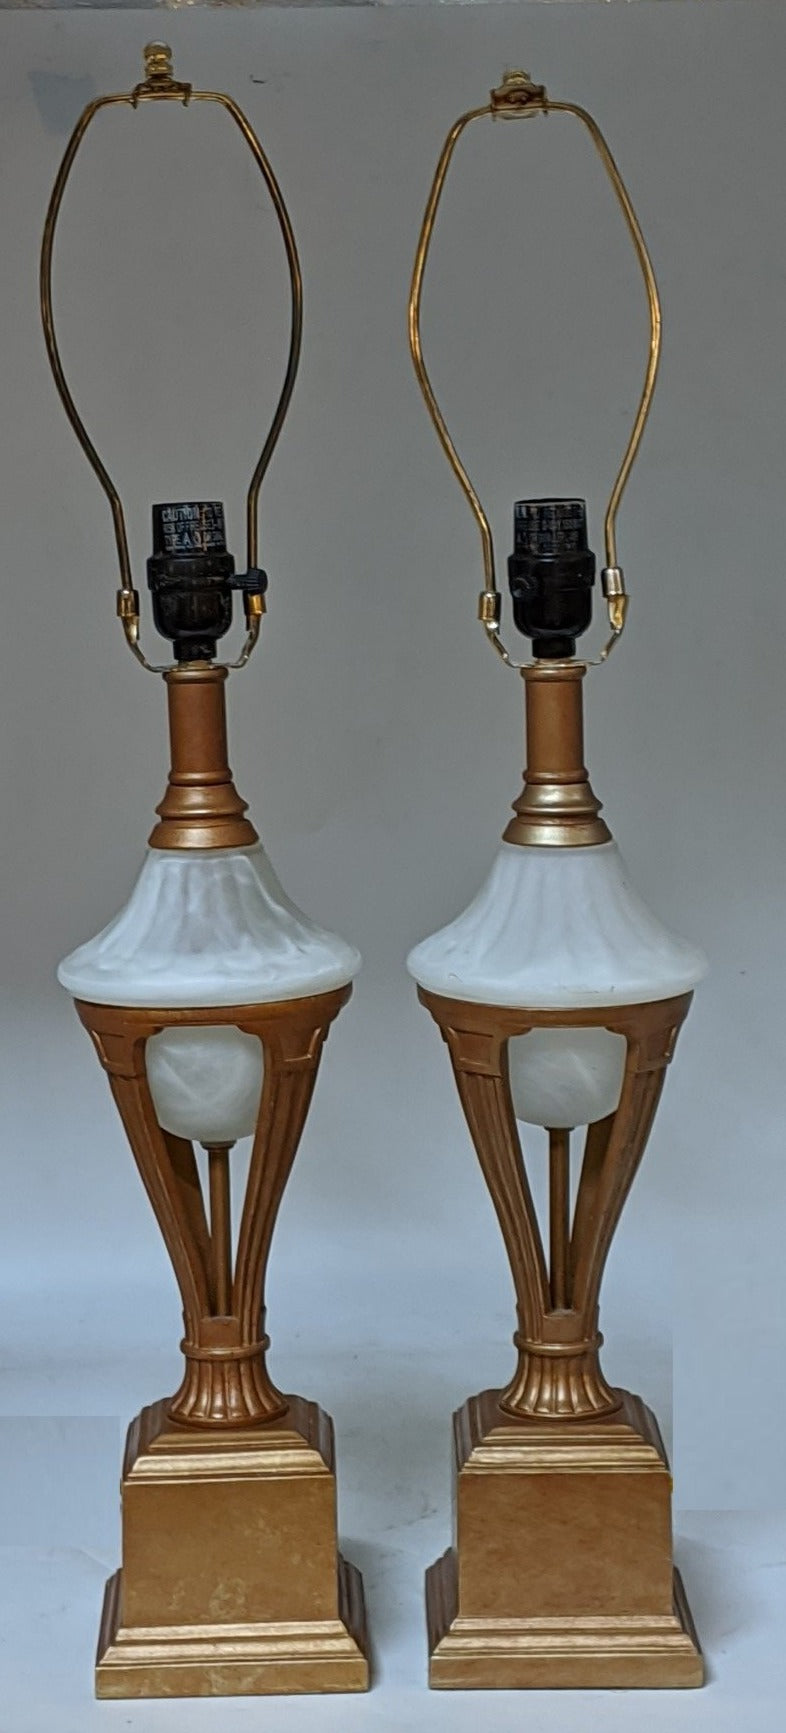 PAIR OF GOLD METAL LAMPS WITH GLASS ORBS